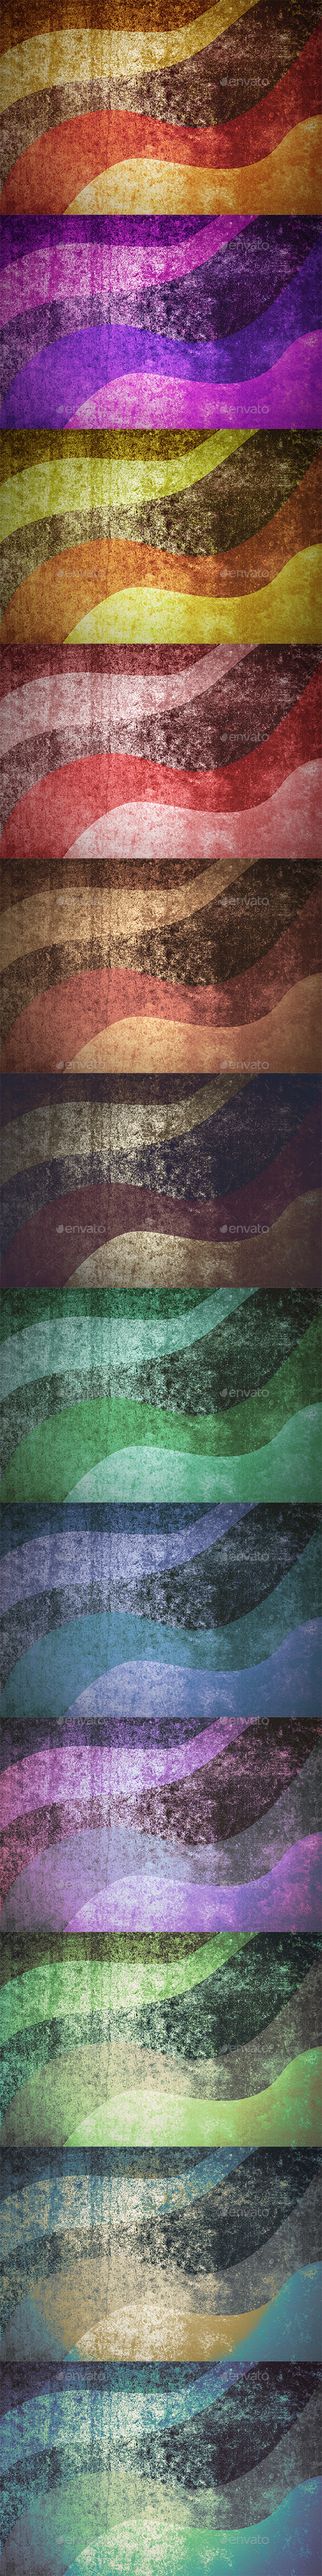 Grunge Texture Colorful Backgrounds - Abstract Backgrounds